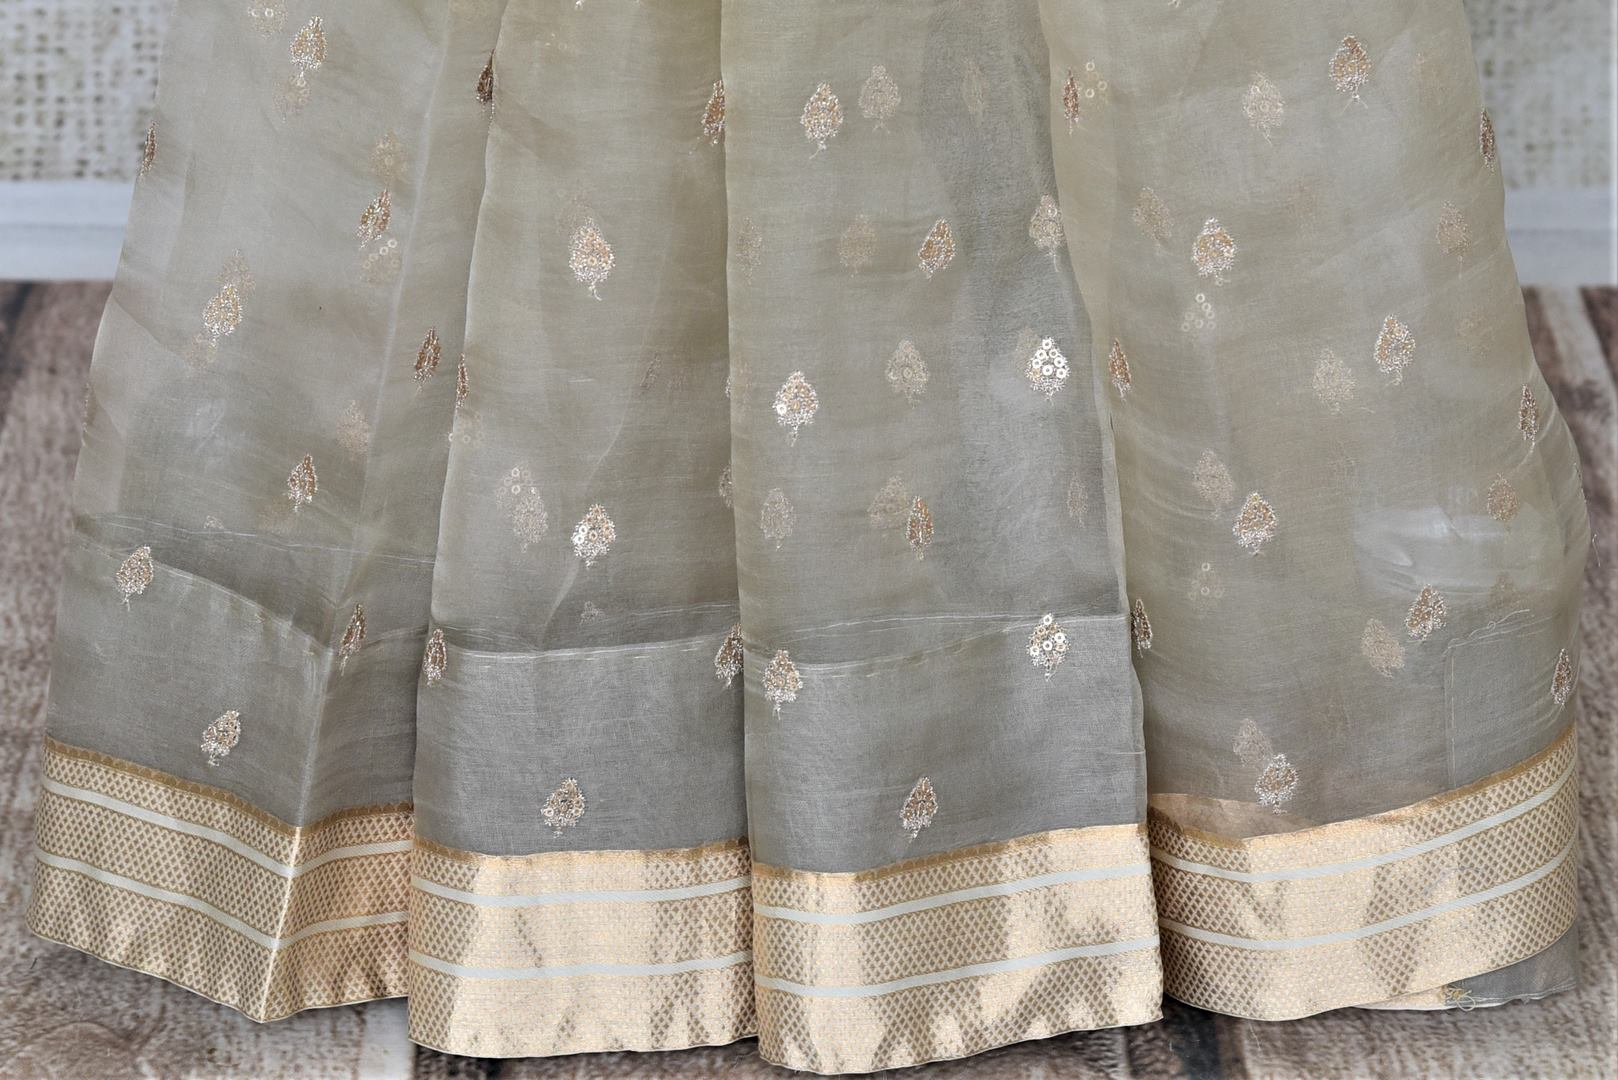 Buy cream embroidered organza saree online in USA with floral velvet blouse. Keep it elegant on special occasions with tussar silk sarees, designer sarees with blouse from Pure Elegance Indian fashion boutique in USA. We bring a especially curated collection of ethnic sarees for Indian women in USA under one roof!-pleats